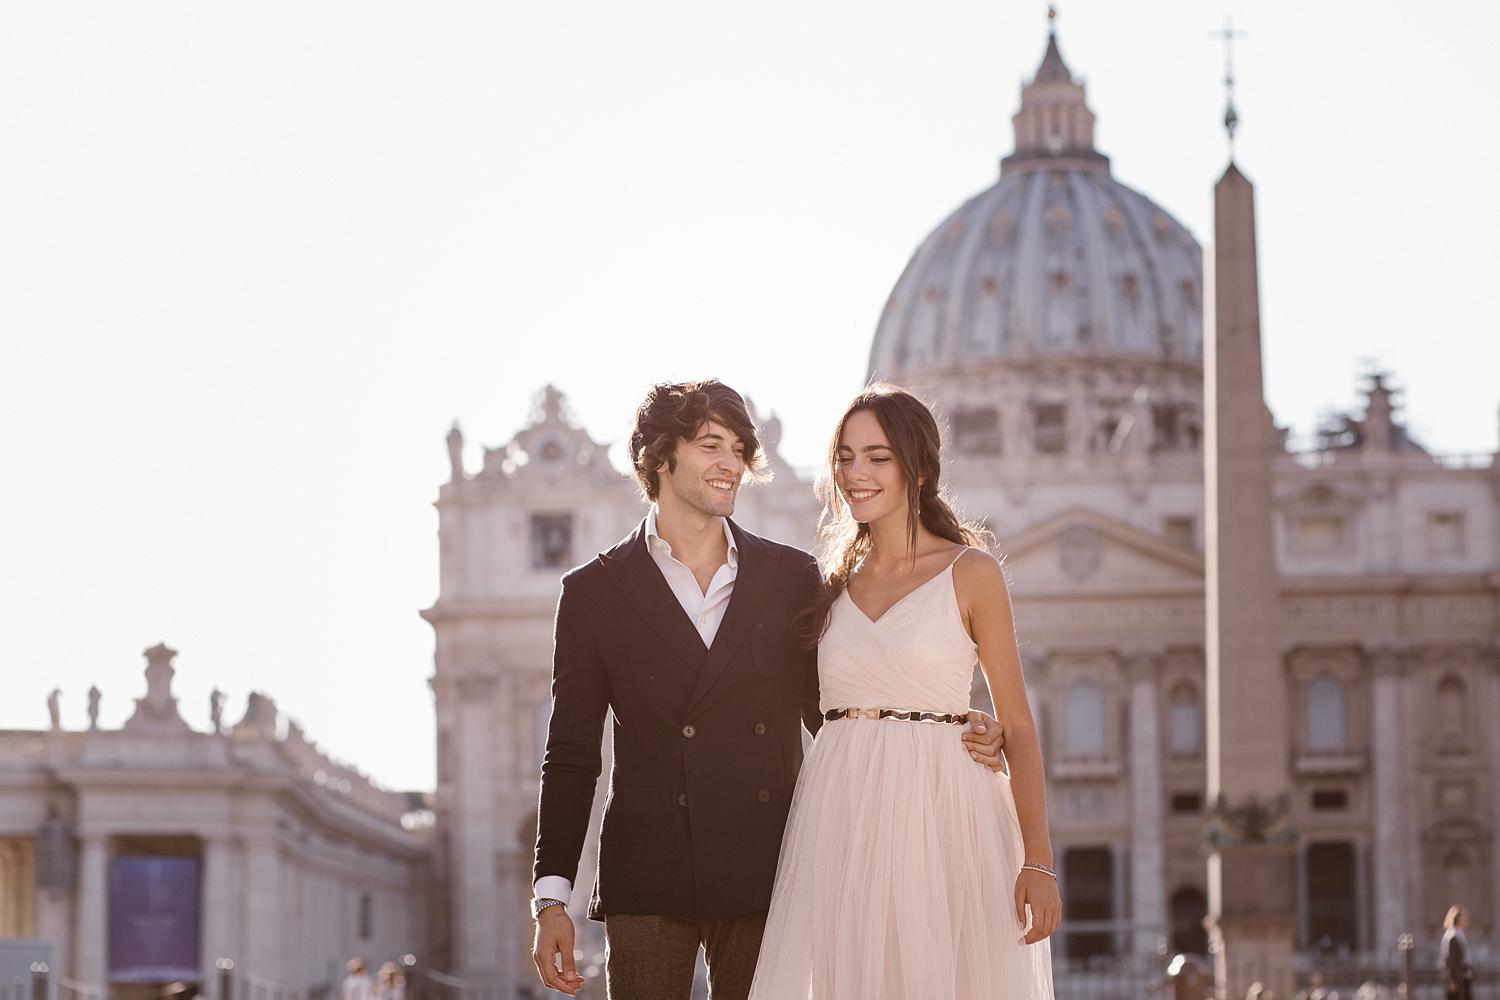 gs weddingphotographer rome 11 - Giulia & Simone - Elegant Couple Shooting in Rome